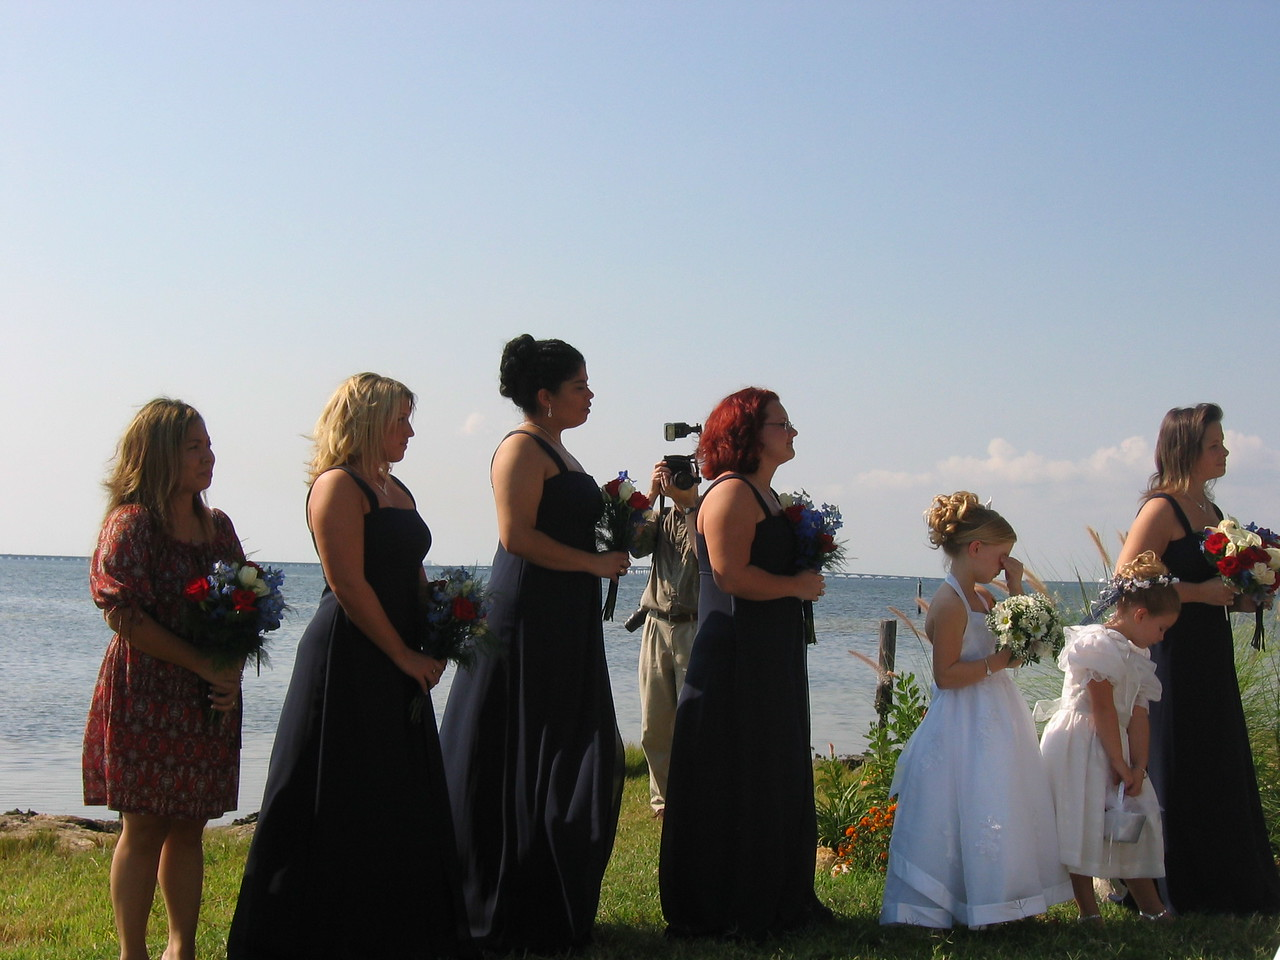 All the Bridesmaids.